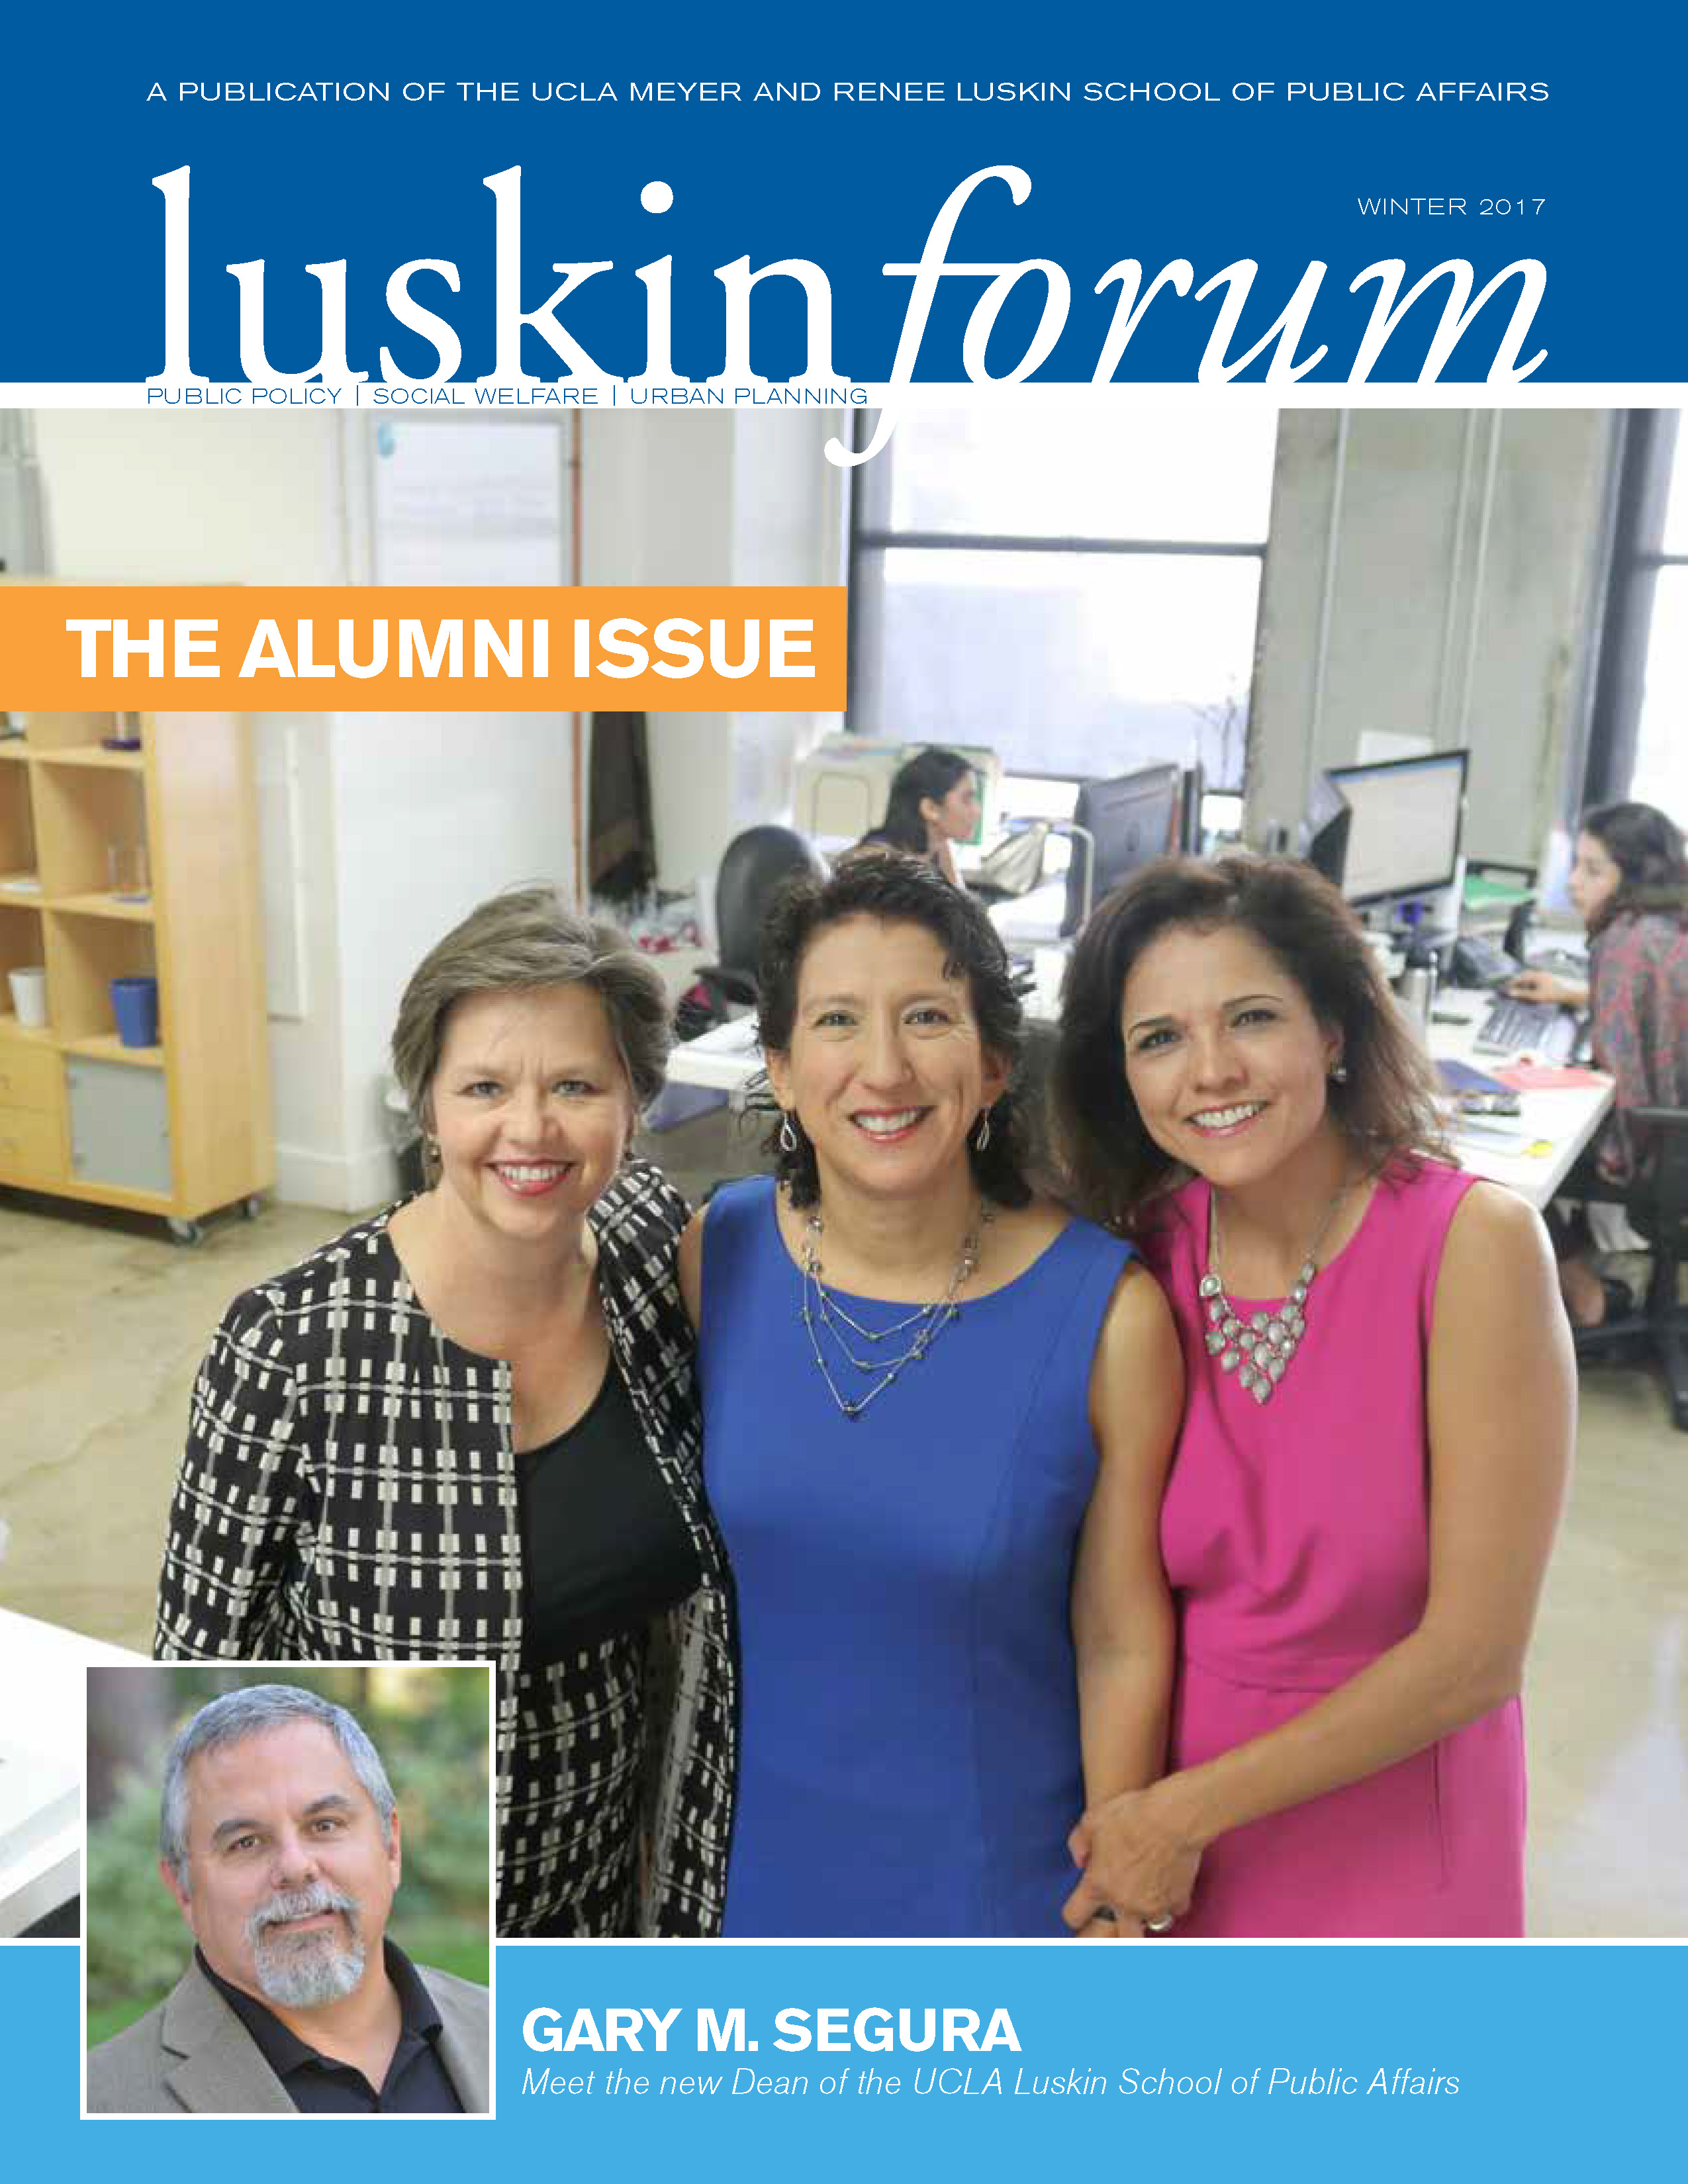 Color printing ucla -  Print Marketing Materials And Produces The Biannual Luskin Forum Magazine If You Re Looking For An Expert To Comment On Issues Involving Public Policy